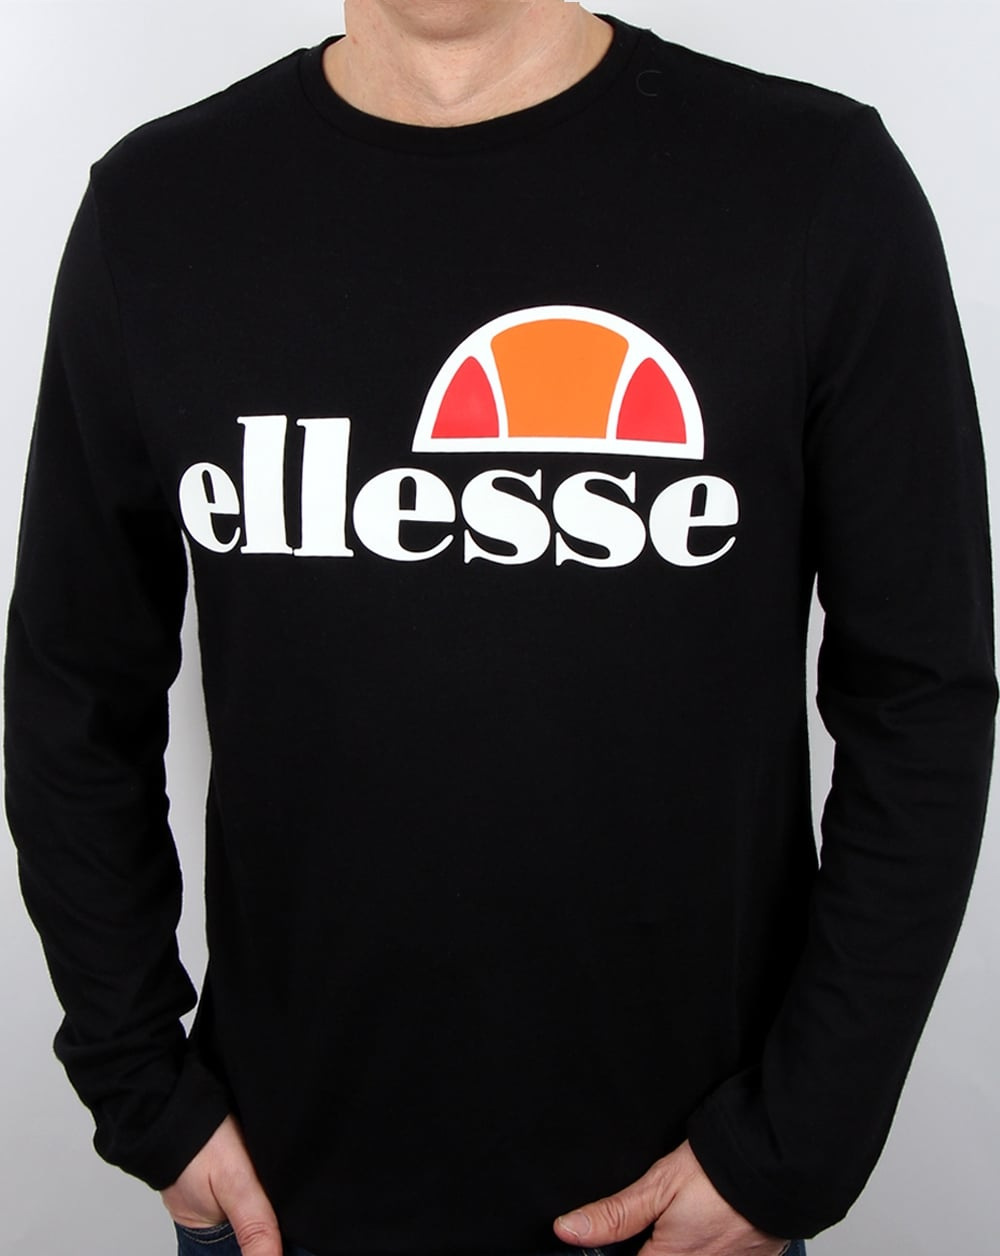 716ccc6644 Ellesse Grazie Long Sleeve T Shirt Black